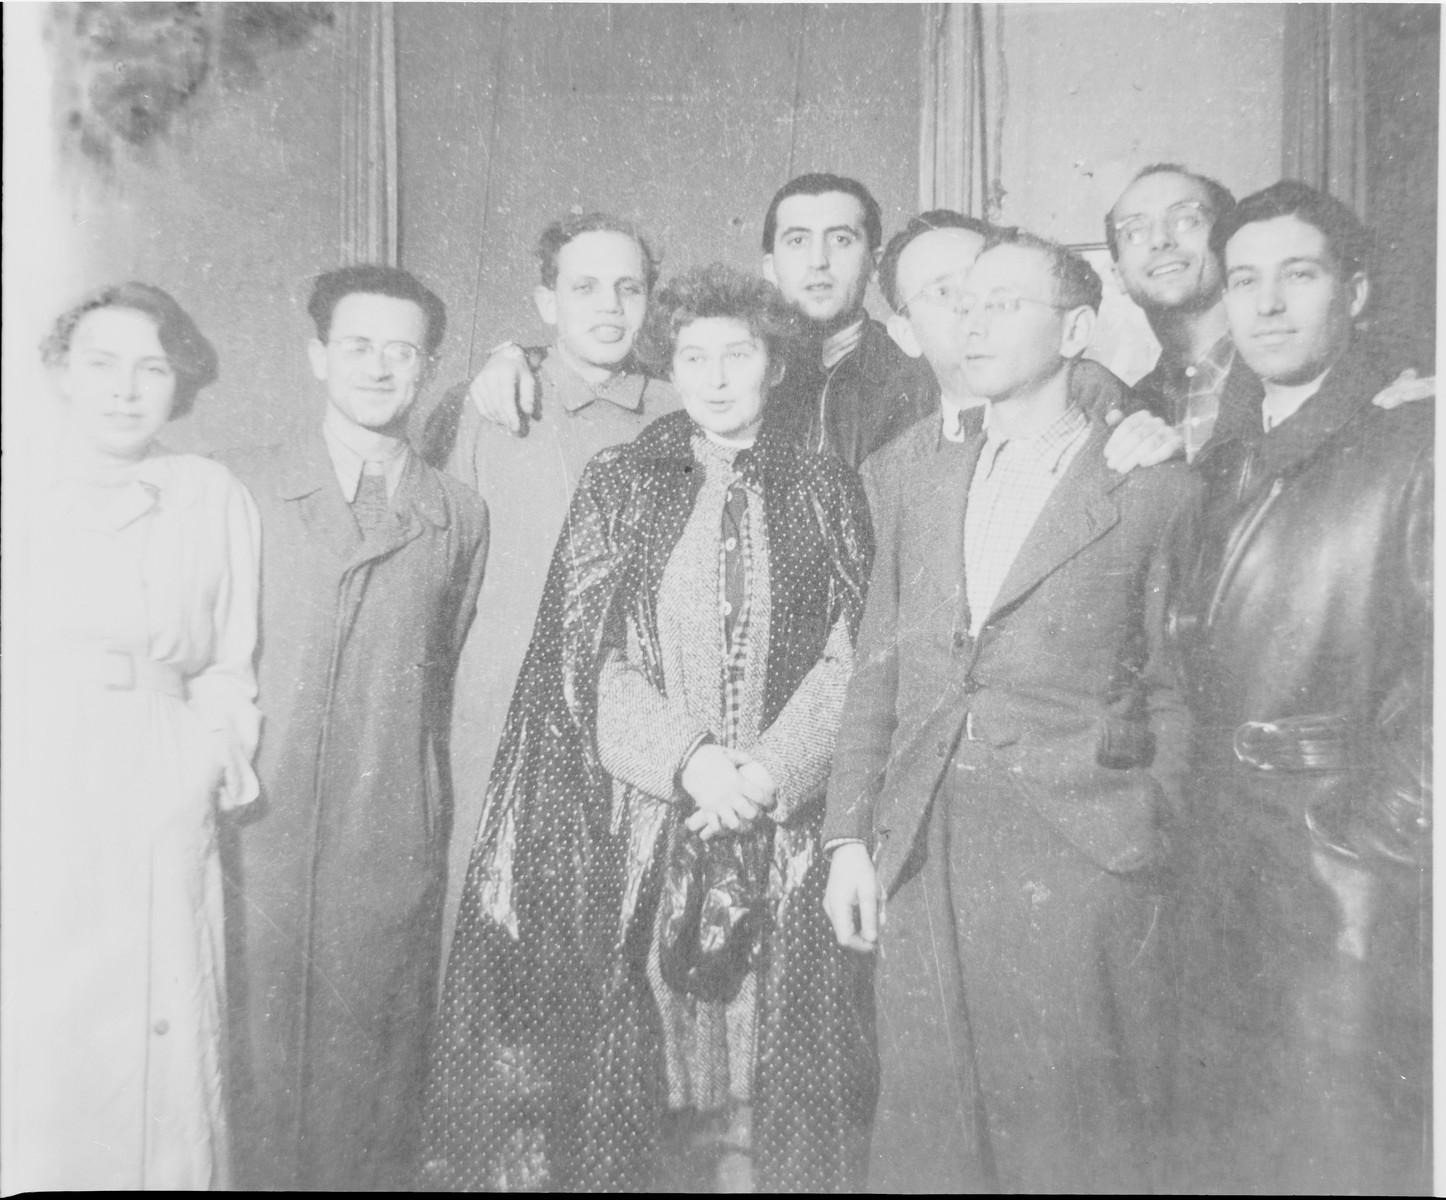 Last meeting of the Youth Aliyah leadership in Berlin.  Pictured from left to right are: Lotte Kaiser, Arthur Posnanski, Hans Wolfgang Cohn, Sonja Okun, Alfred Selbiger, Ludwig Kuttner, Kurt Silberpfennig, Jizchak Schwersenz, and Herbert Growald.